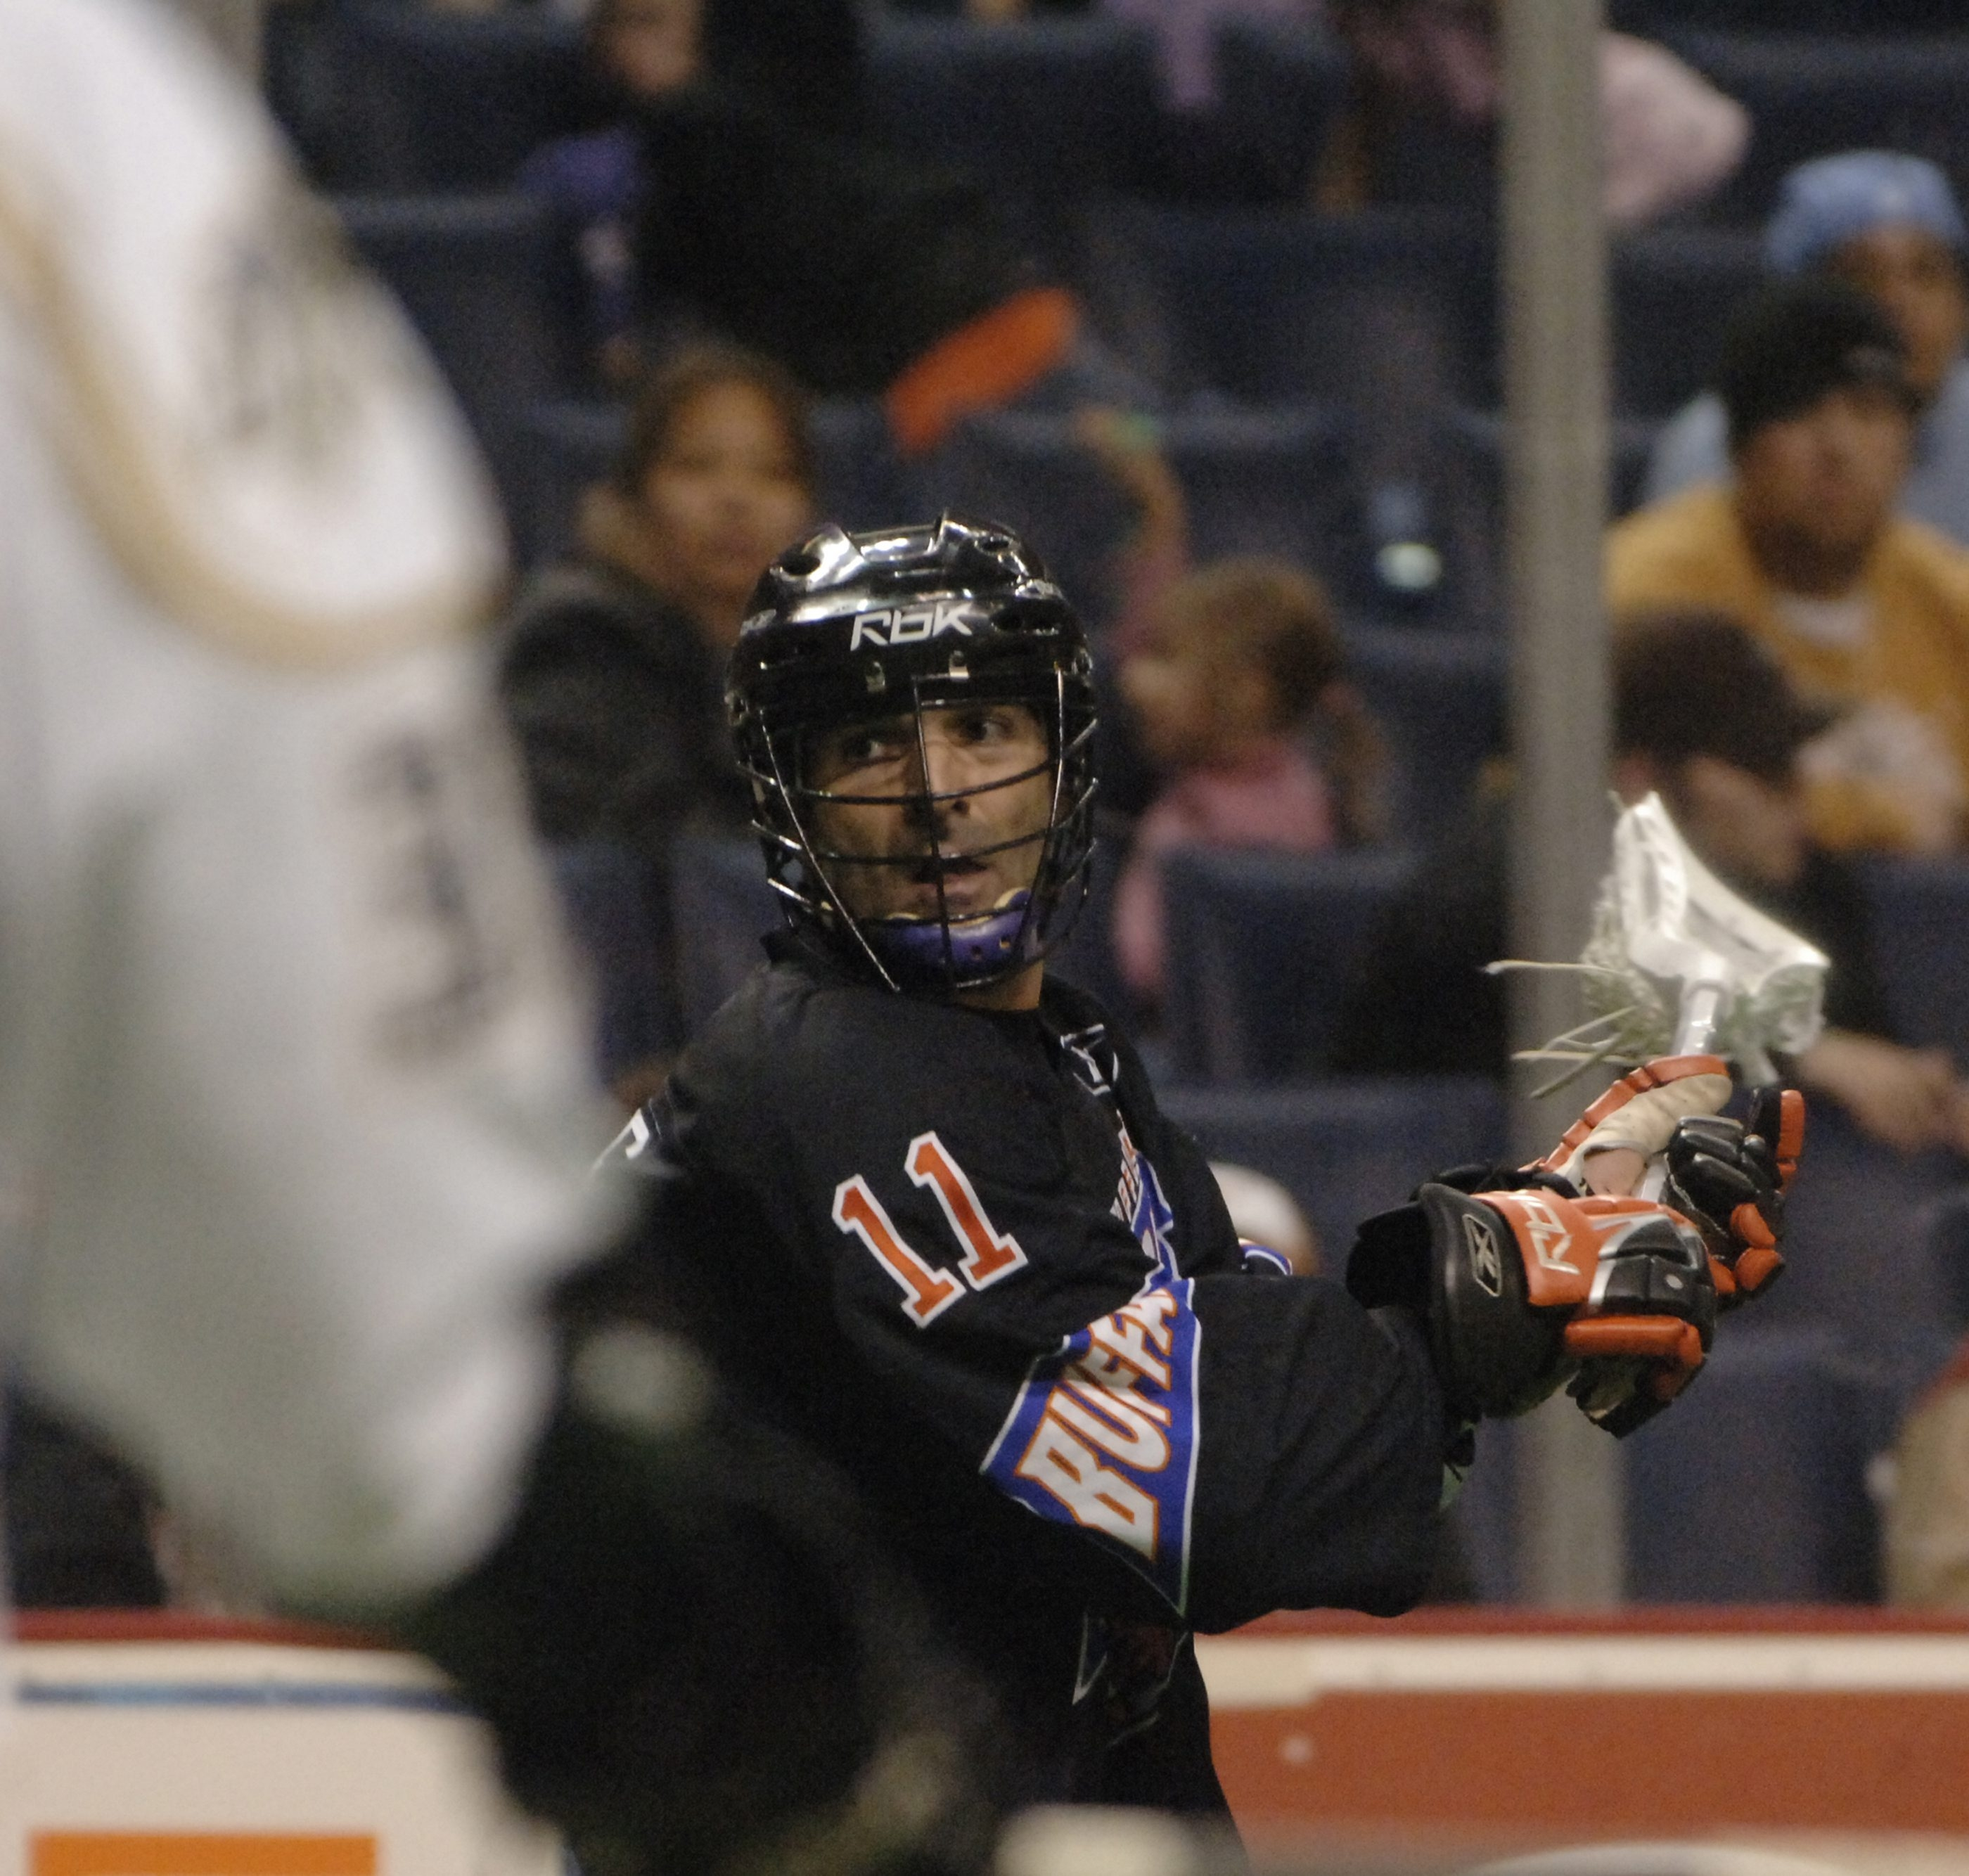 John Tavares played with the Bandits for 24 seasons, winning four titles, and has more points than anyone in league history.